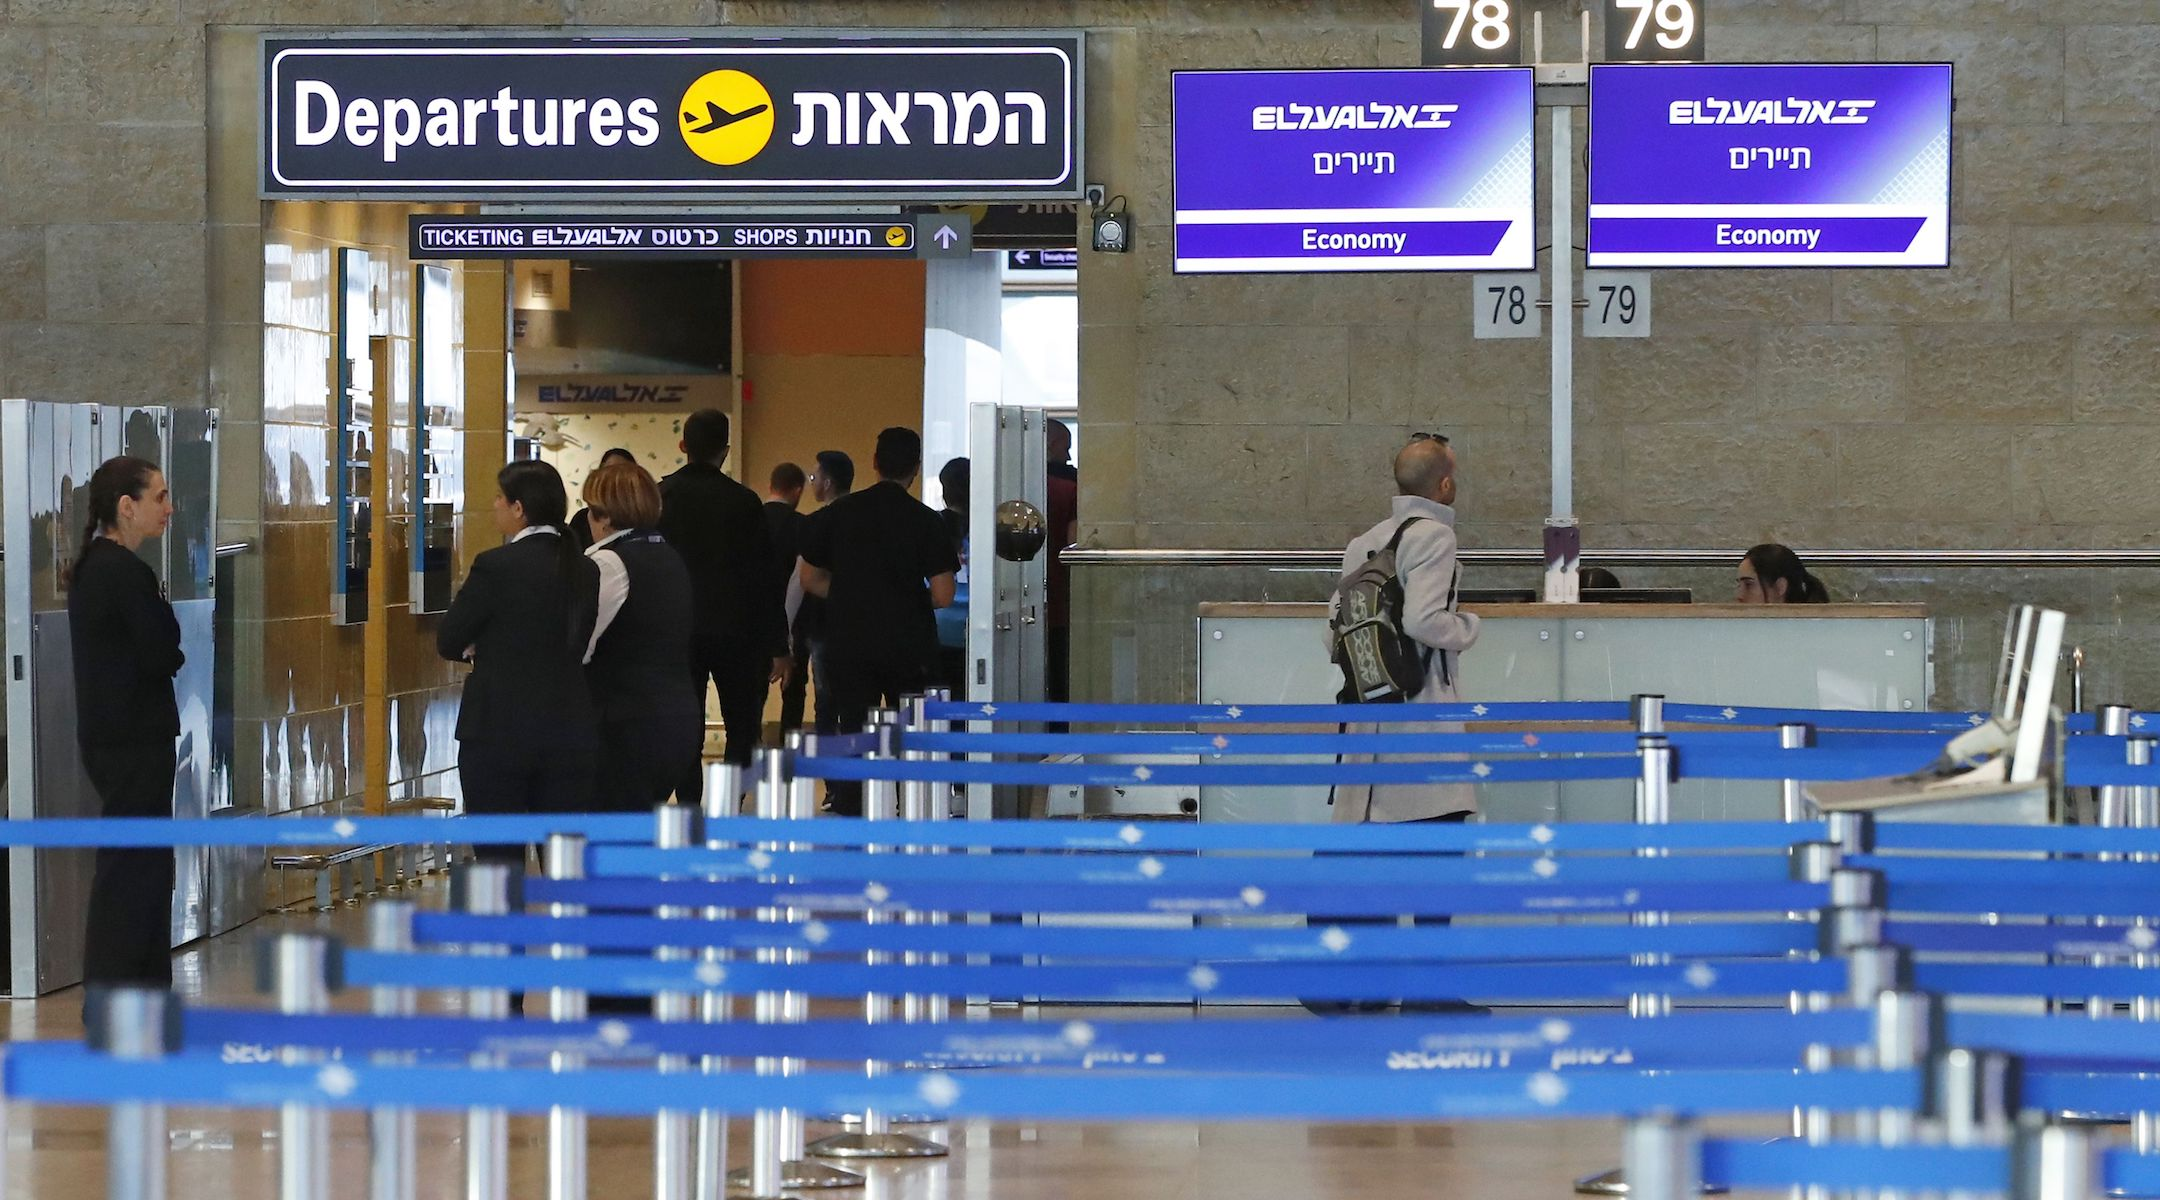 The El Al departure counter at Ben Gurion International Airport, Feb. 27, 2020. (Photo/JTA-Jack Guez-AFP via Getty)